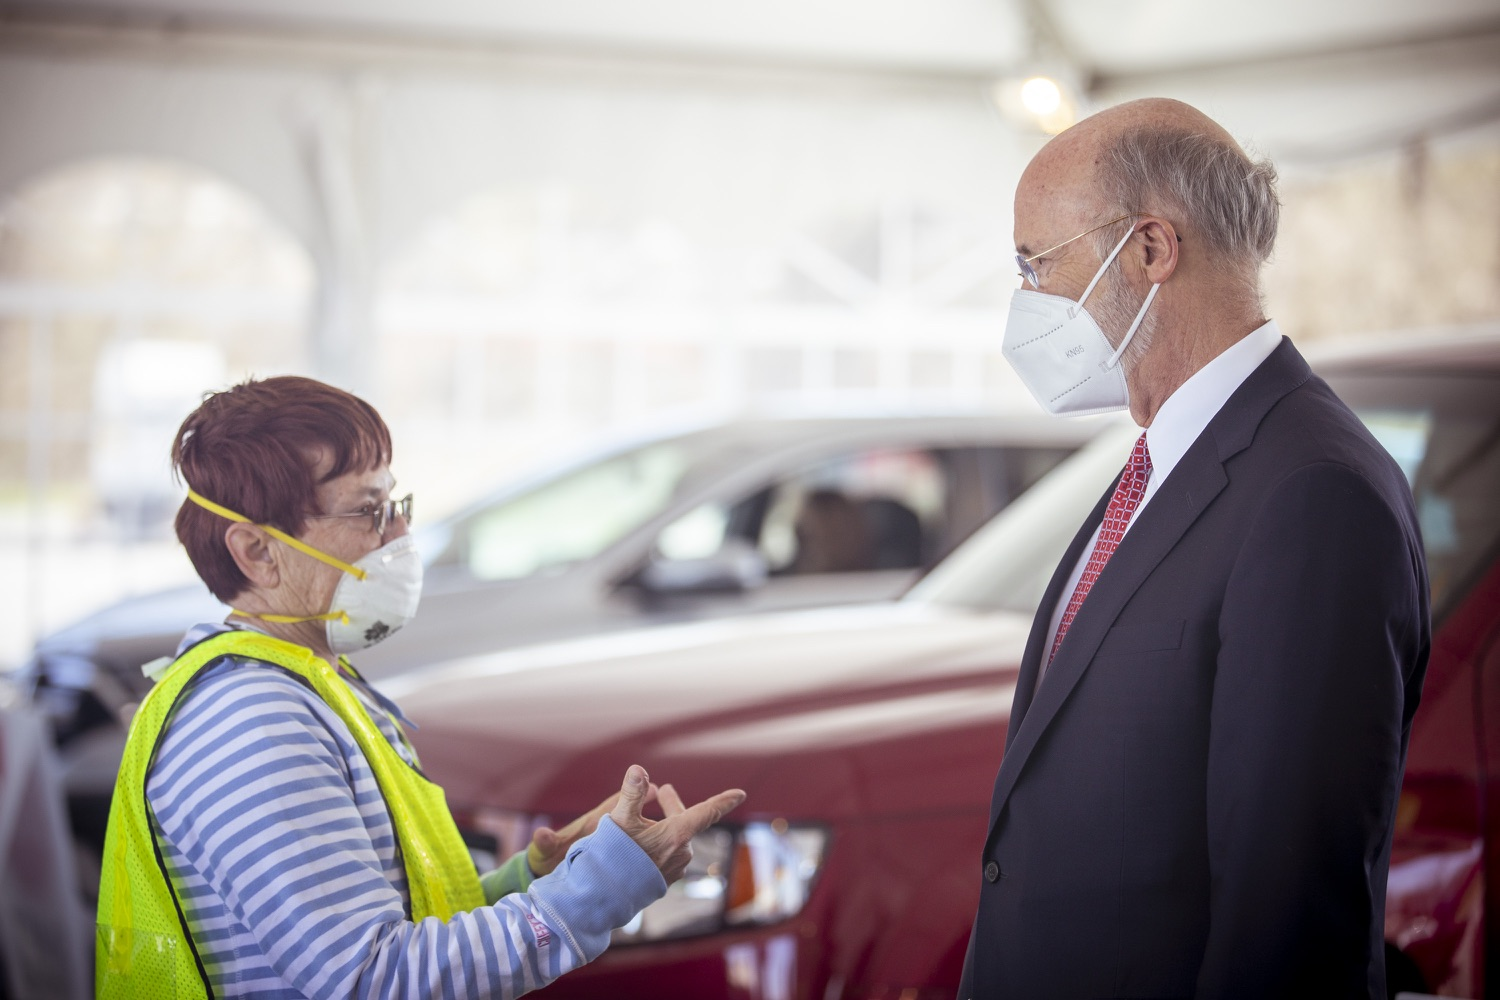 """<a href=""""https://filesource.wostreaming.net/commonwealthofpa/photo/18631_gov_hacc_vaccine_dz_020.jpg"""" target=""""_blank"""">⇣Download Photo<br></a>Pennsylvania Governor Tom Wolf greeting workers at the vaccination site.Governor Wolf today visited the COVID-19 drive-thru mass vaccination clinic for Dauphin County residents at Harrisburg Area Community College. The drive-thru clinic was developed in partnership with UPMC Pinnacle and Dauphin County. He was joined by UPMC Pinnacle President Phil Guarneschelli and Dauphin County Commissioners Mike Pries and George P. Hartwick III.  HARRISBURG, PA -- March 30, 2021"""